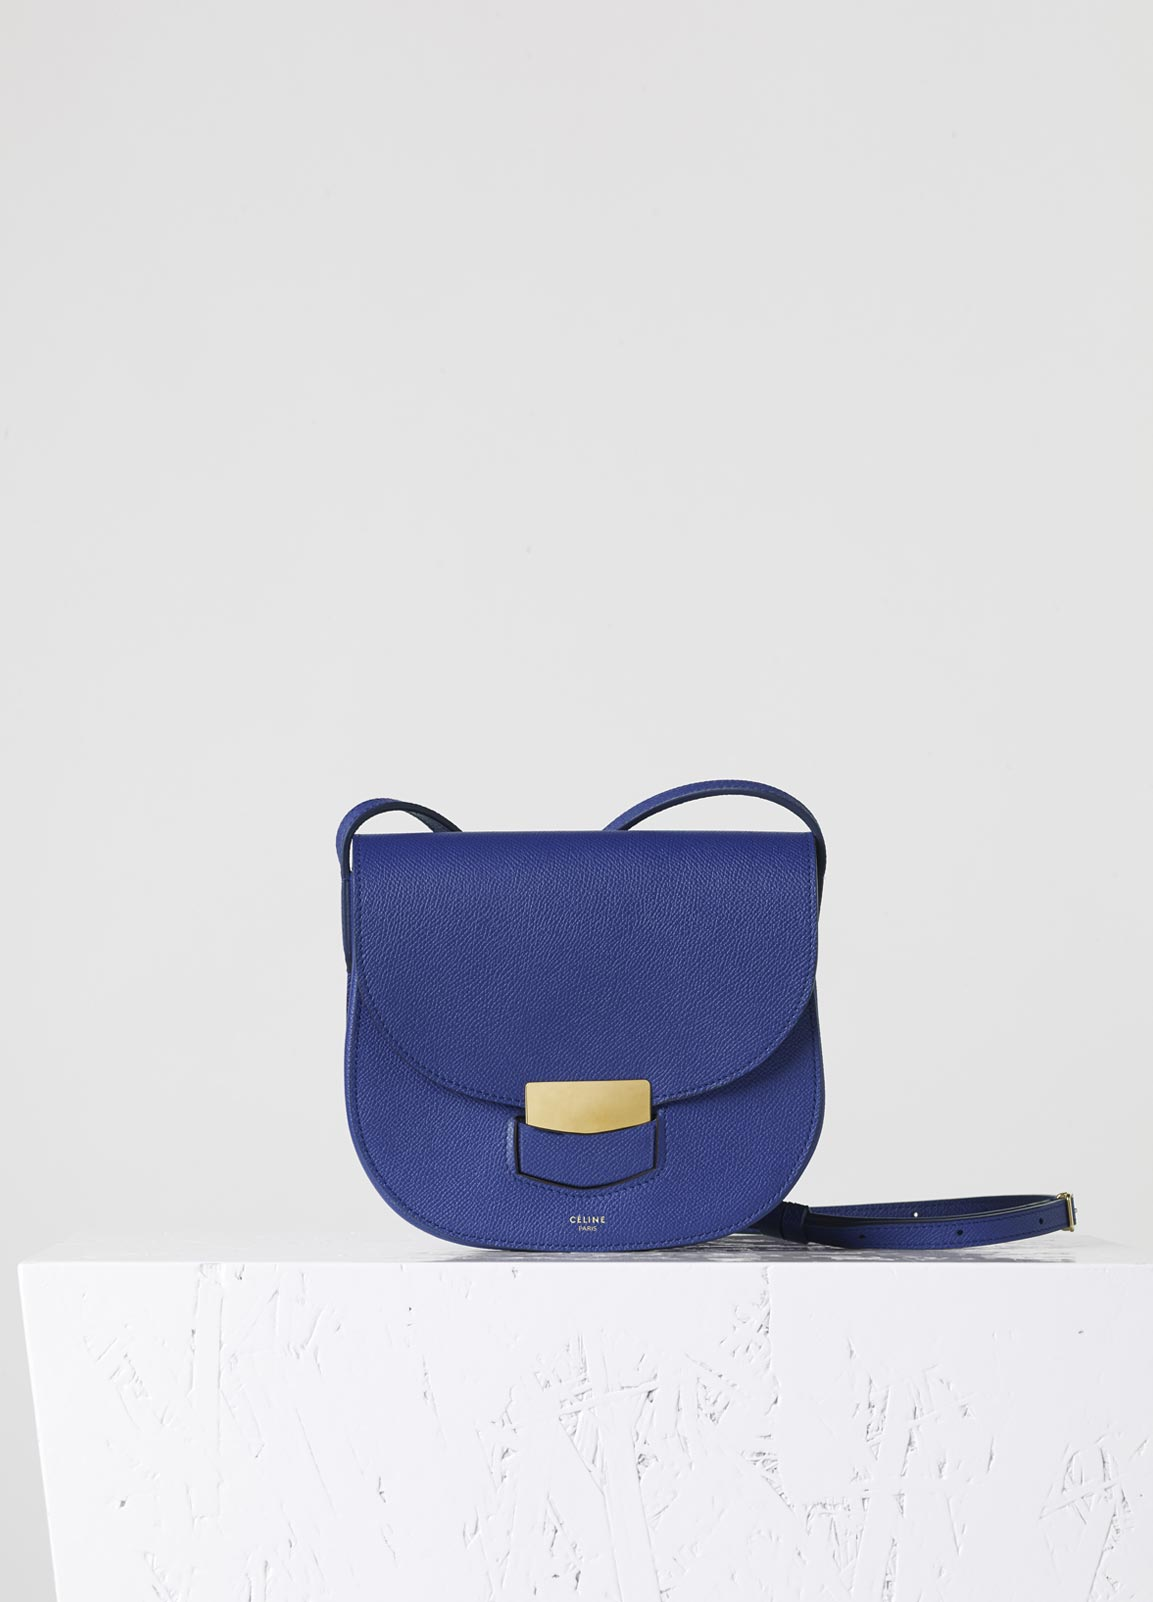 fake celine bags - Celine 2015 Fall & Winter Bag Collection | Lollipuff